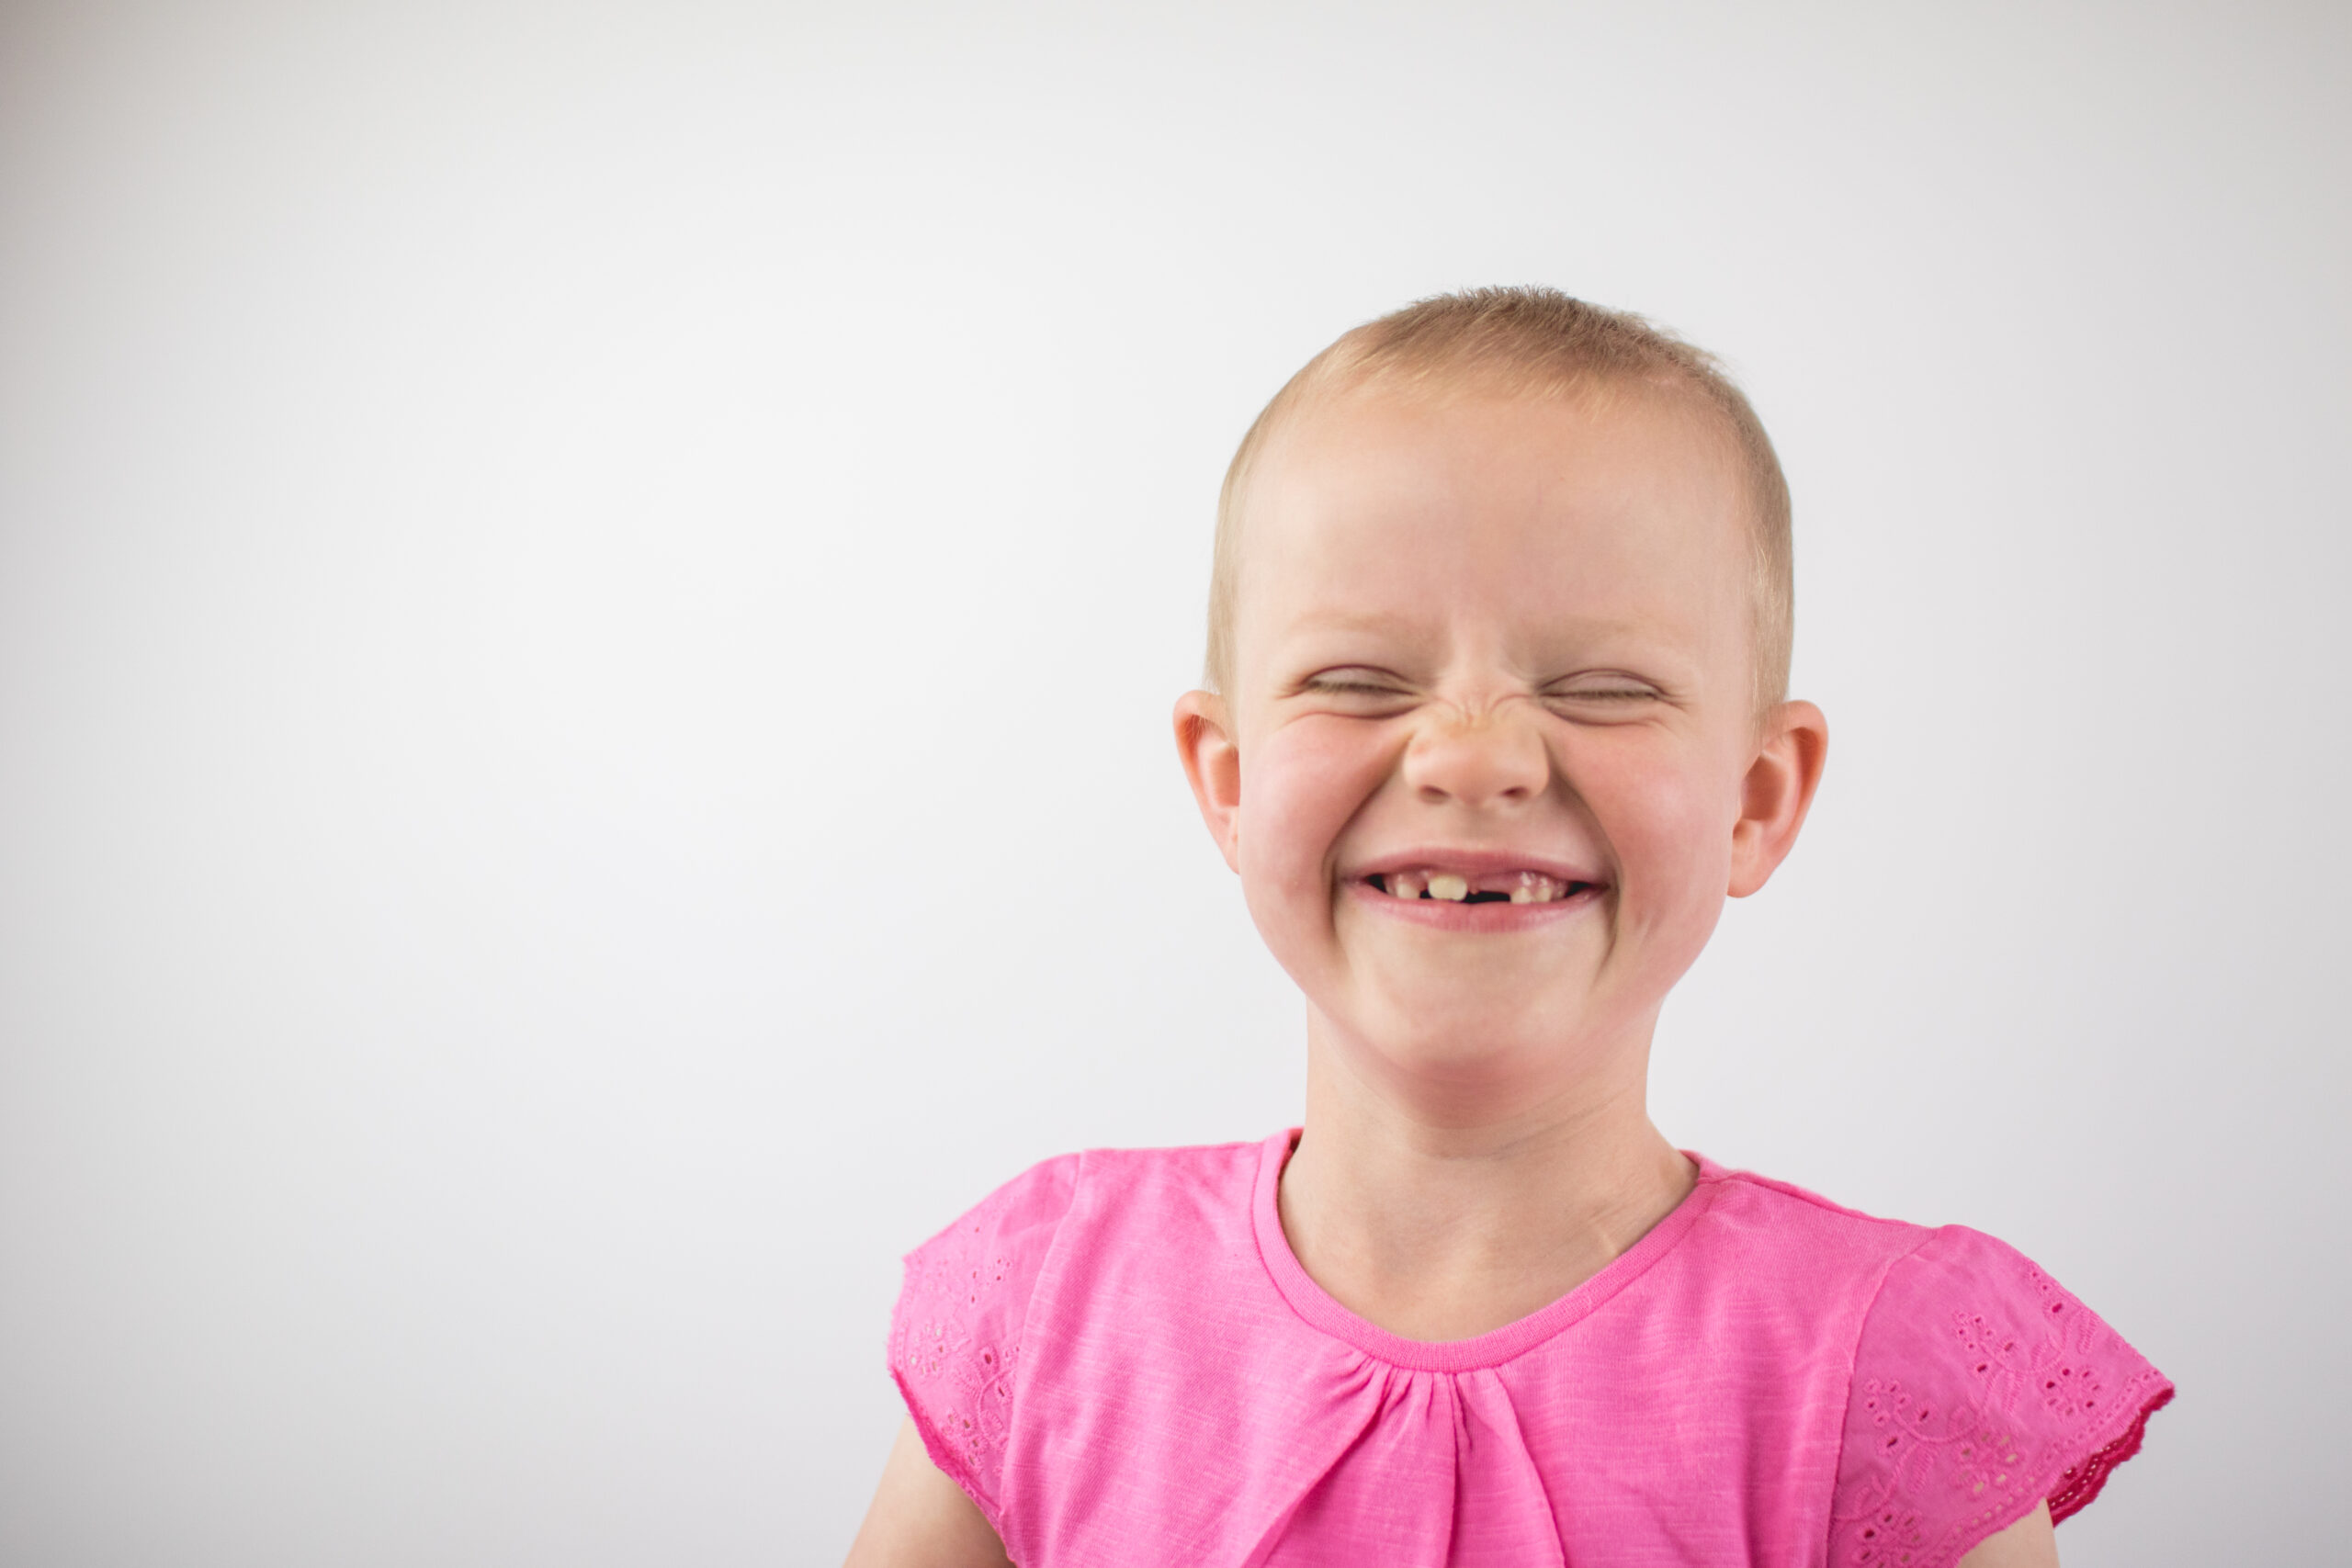 A picture of one of our young beneficiaries Tayen smiling with her eyes closed. She's wearing a pink t-shirt.